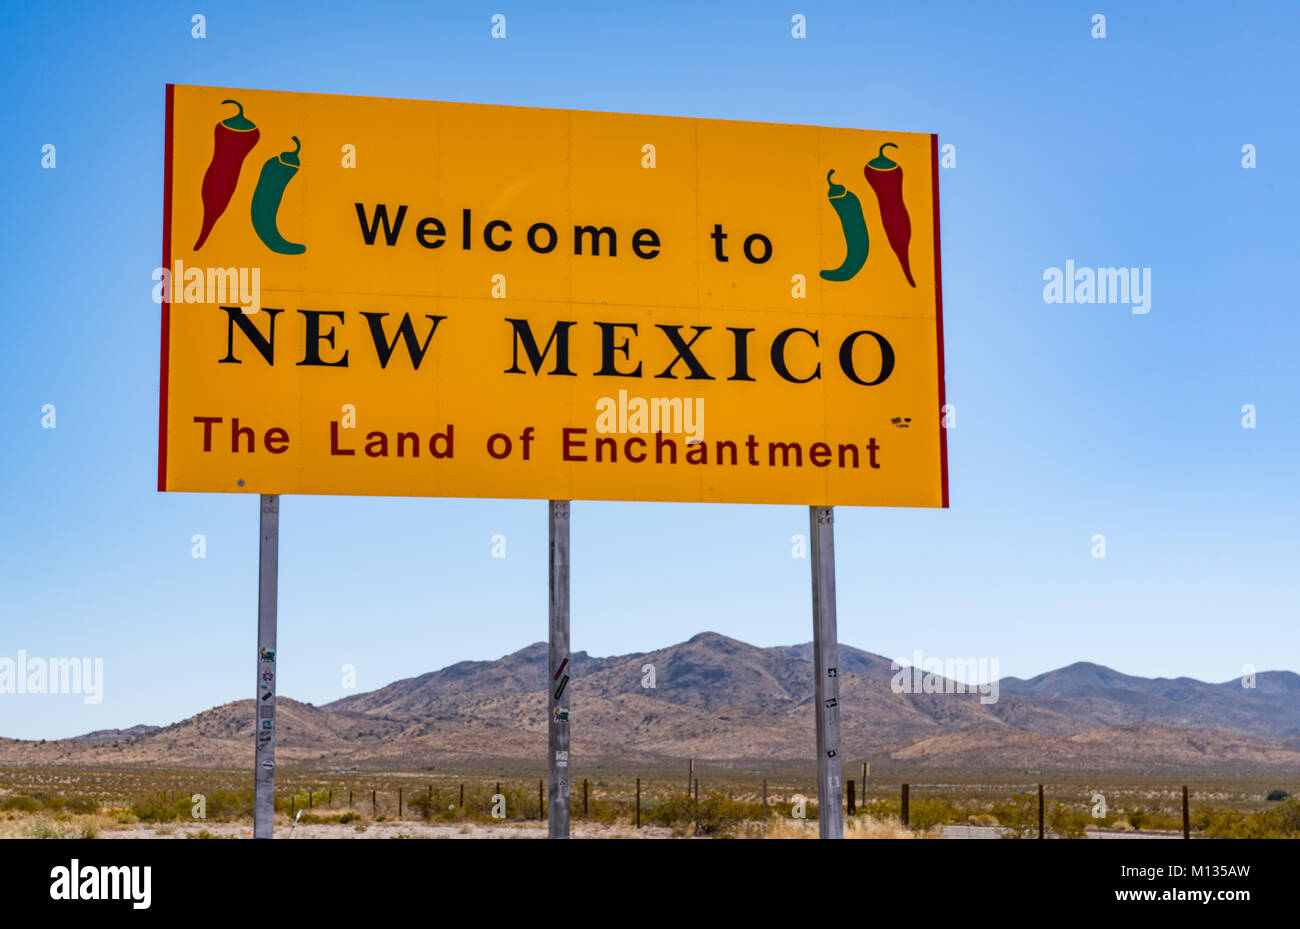 NEW MEXICO, USA - OCTOBER 26, 2017:  Welcome to New Mexico sign along the highway at the state border. Stock Photo